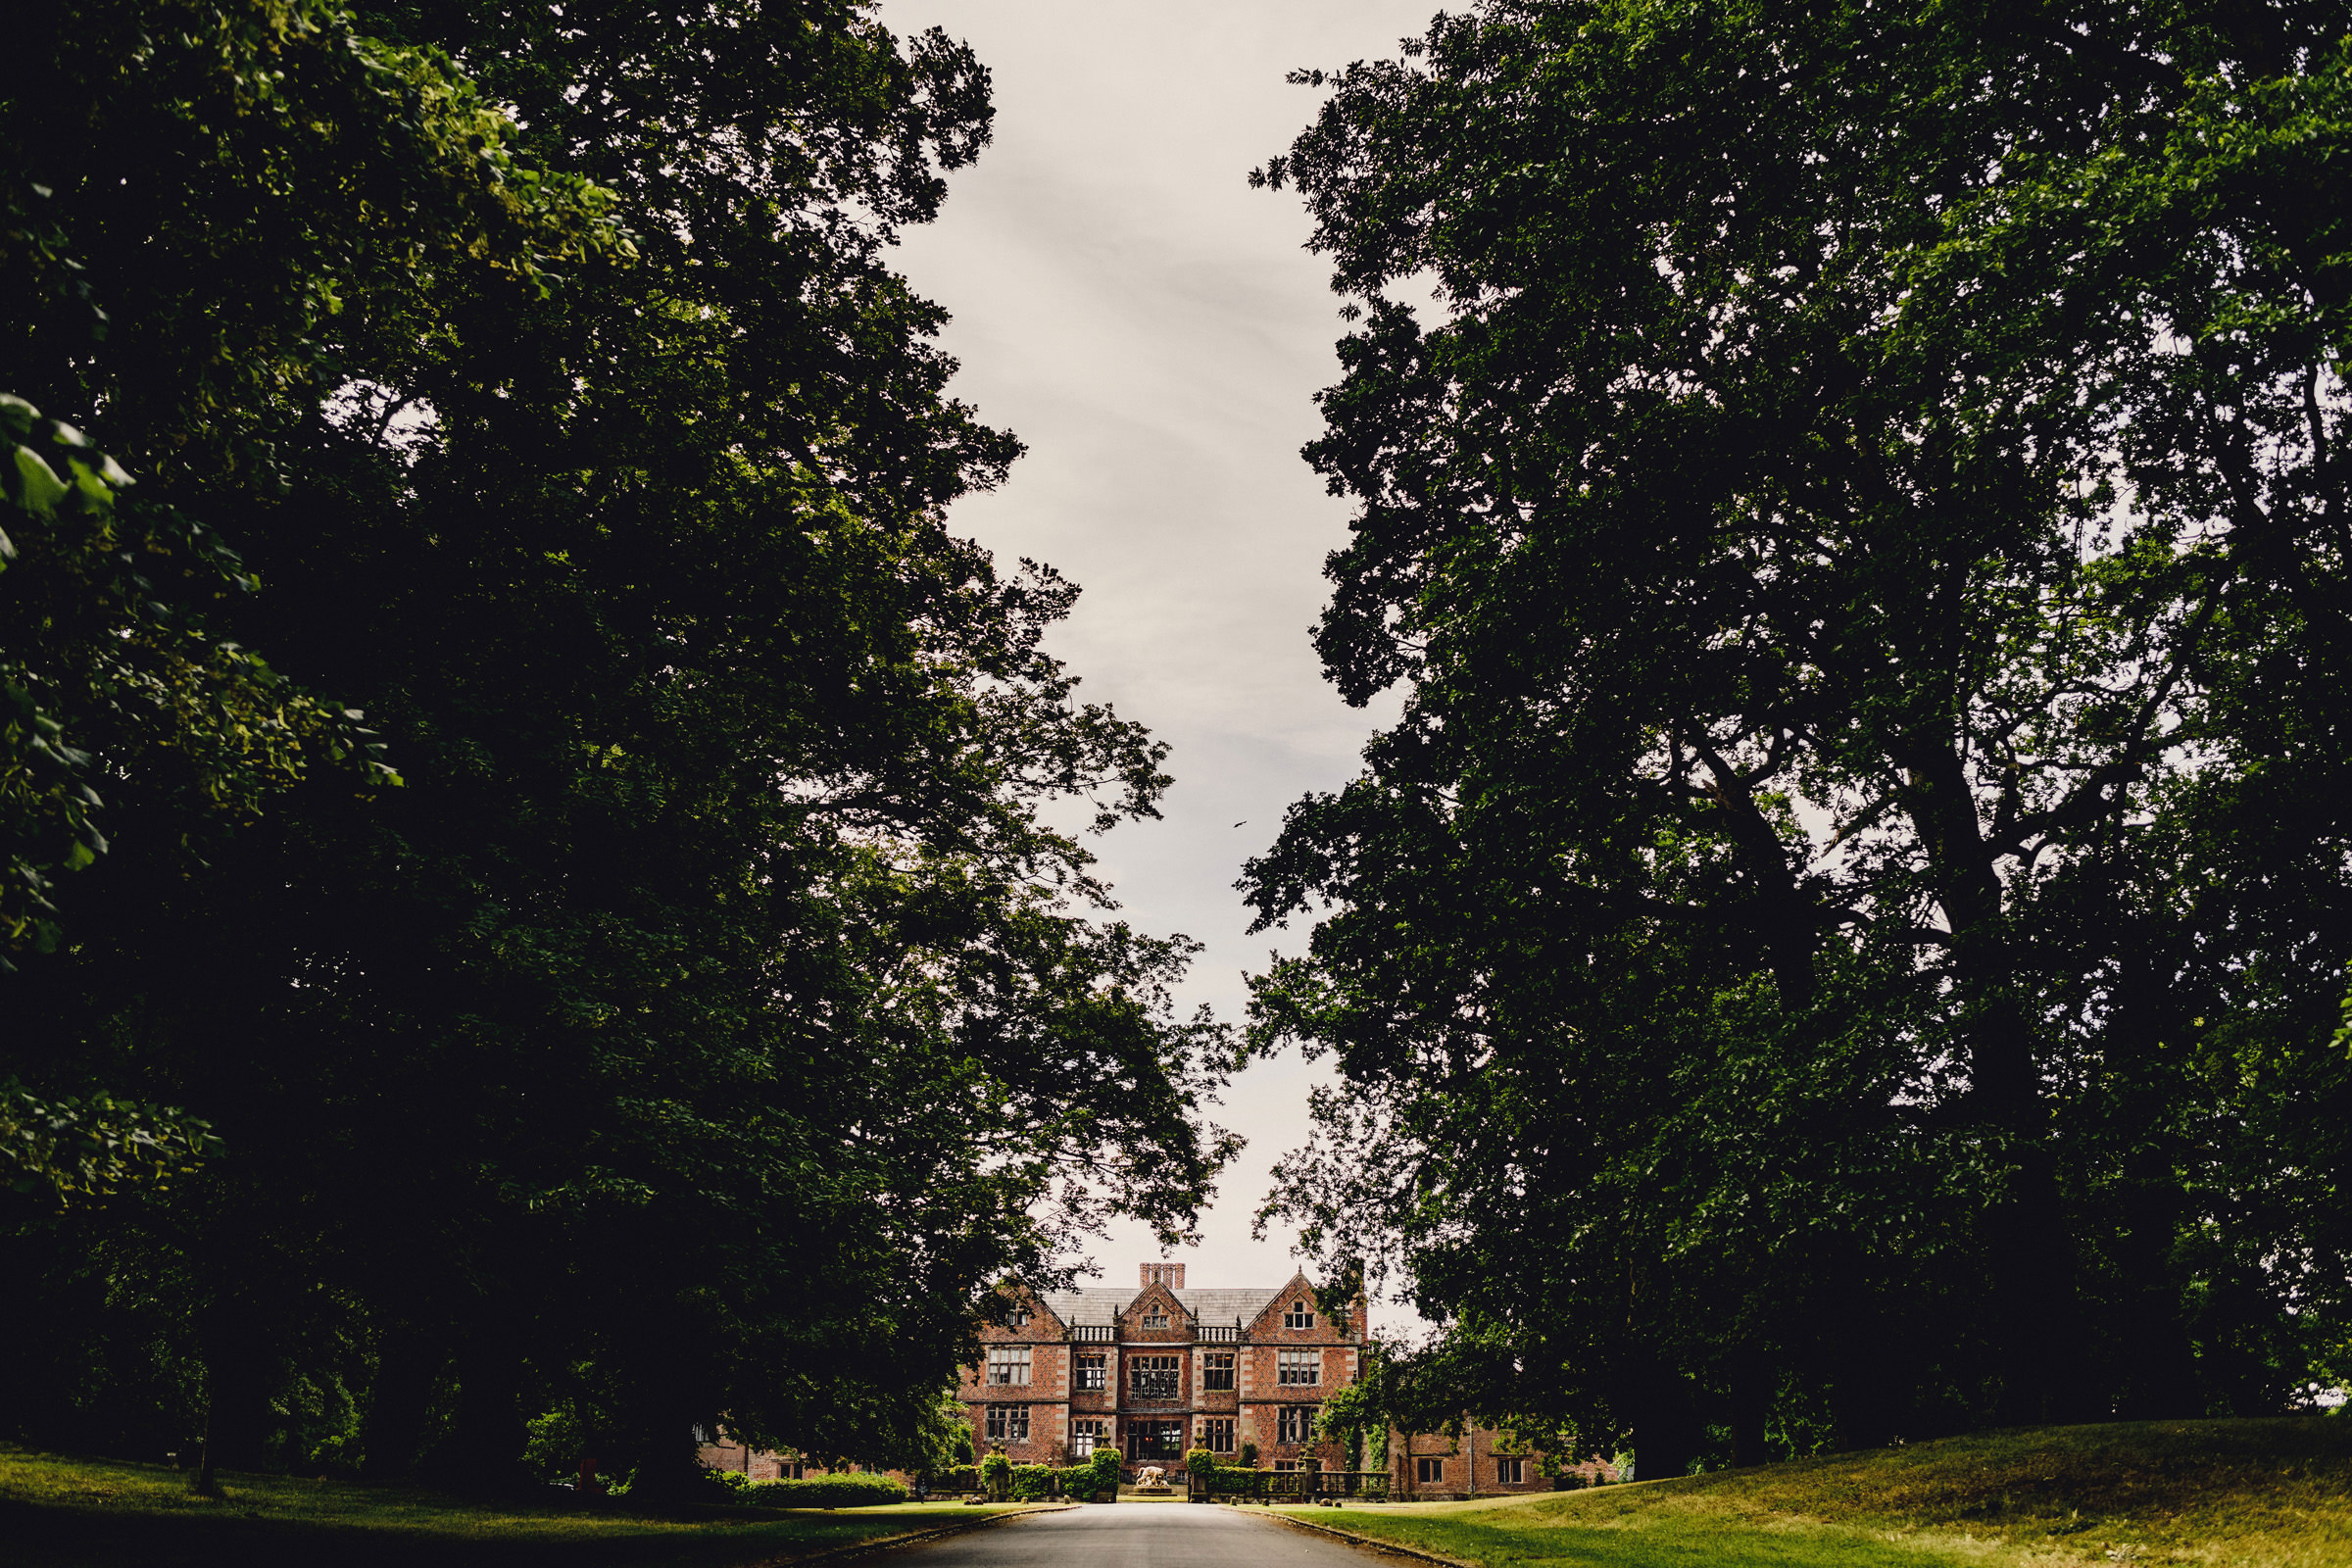 Entrance to Dorfold Hall - photo by MIKI Studios